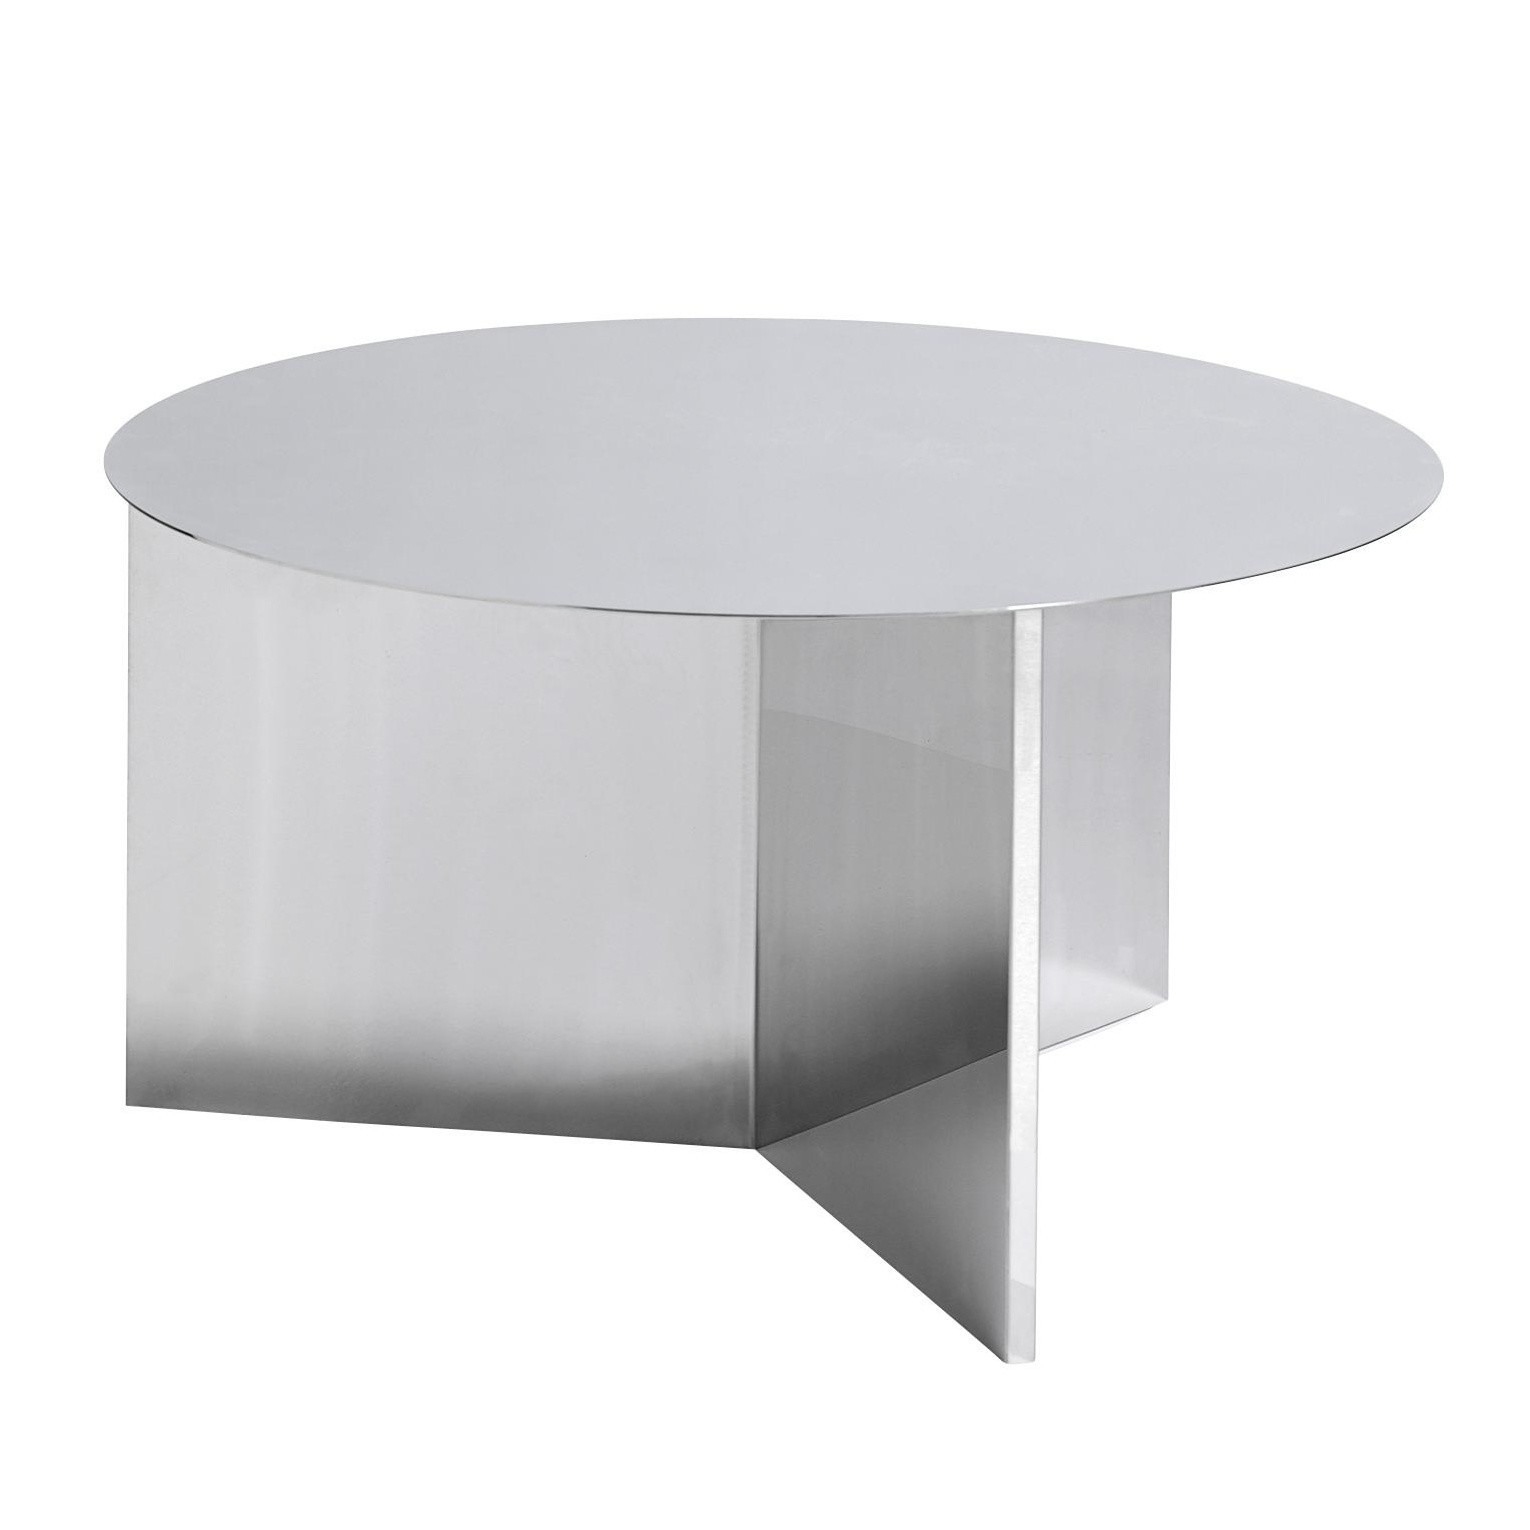 slit table xl side table  idc